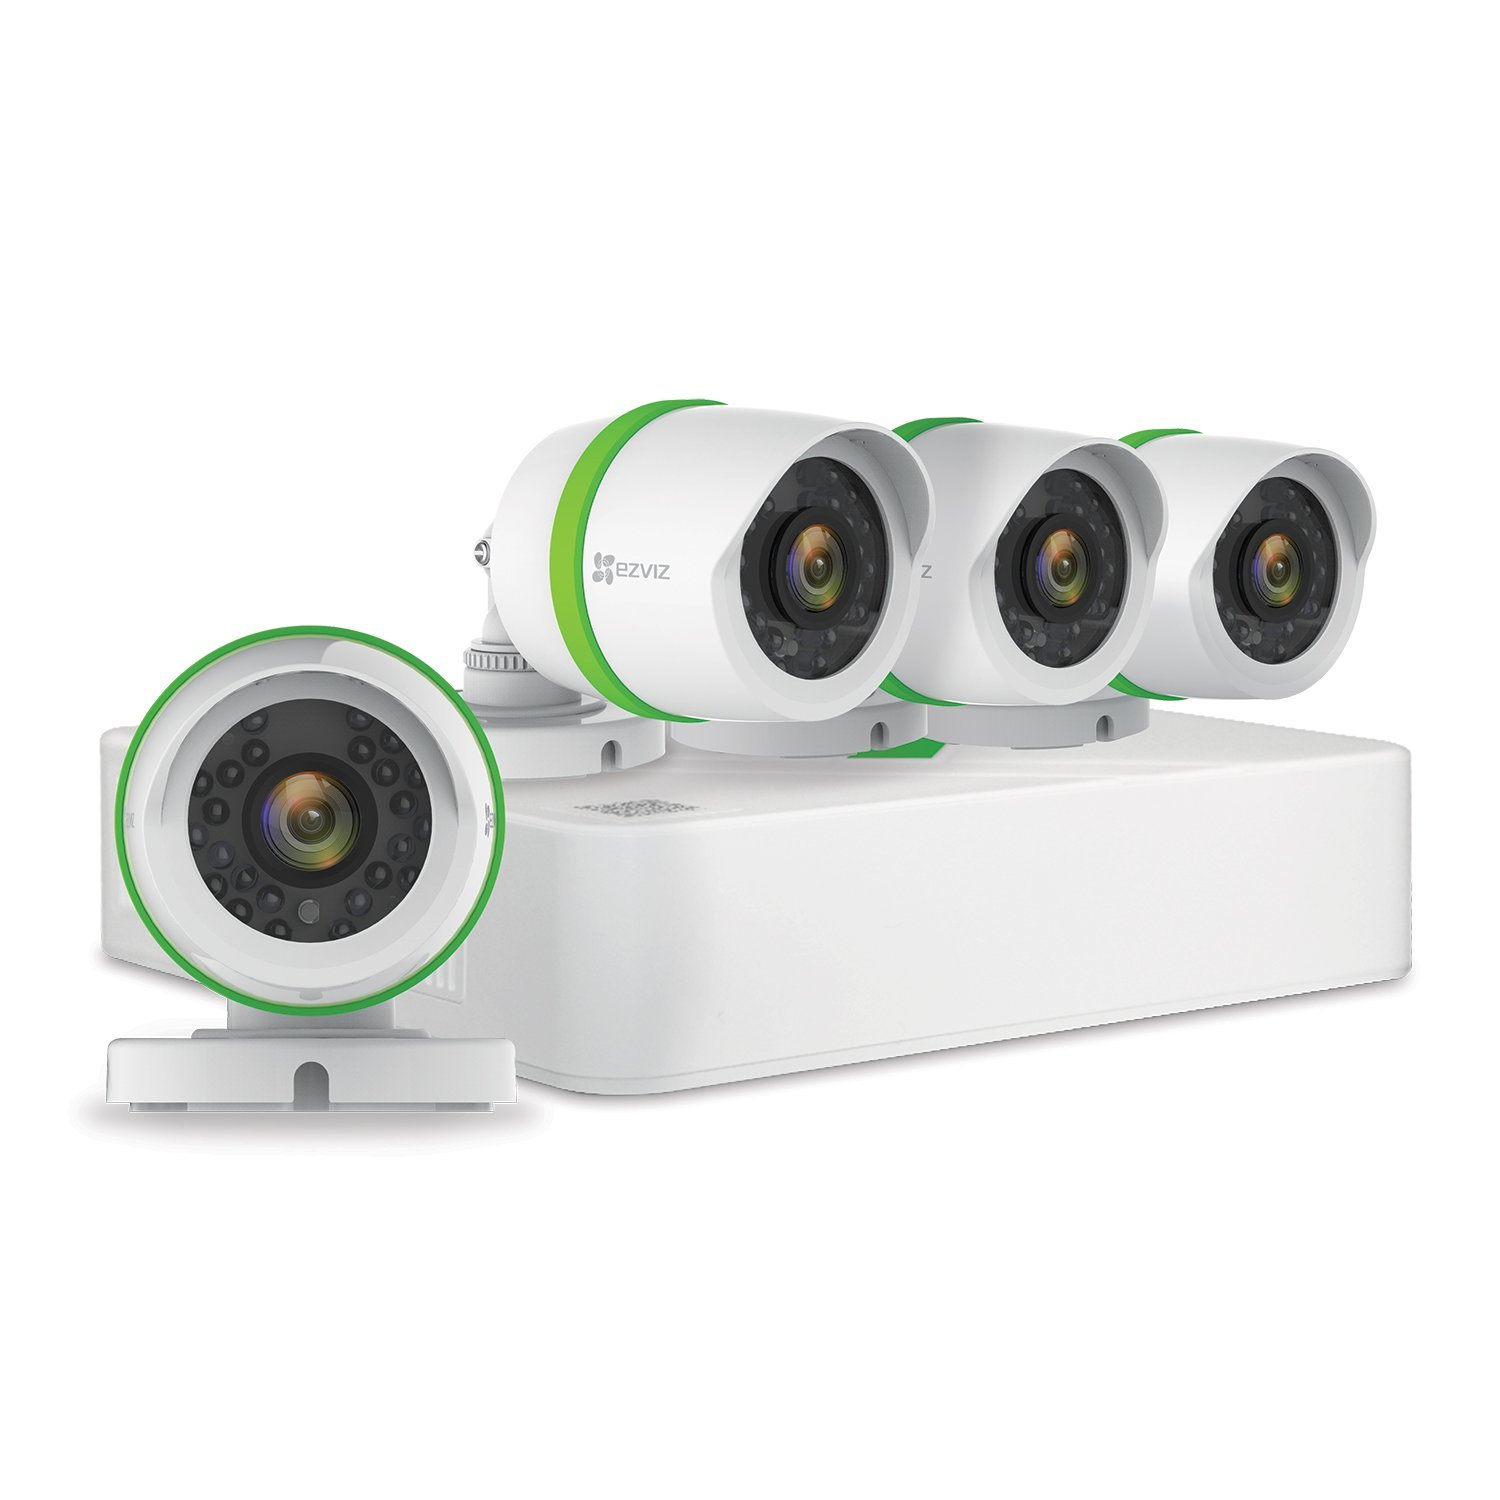 EZVIZ Smart Home 1080p Security Camera System